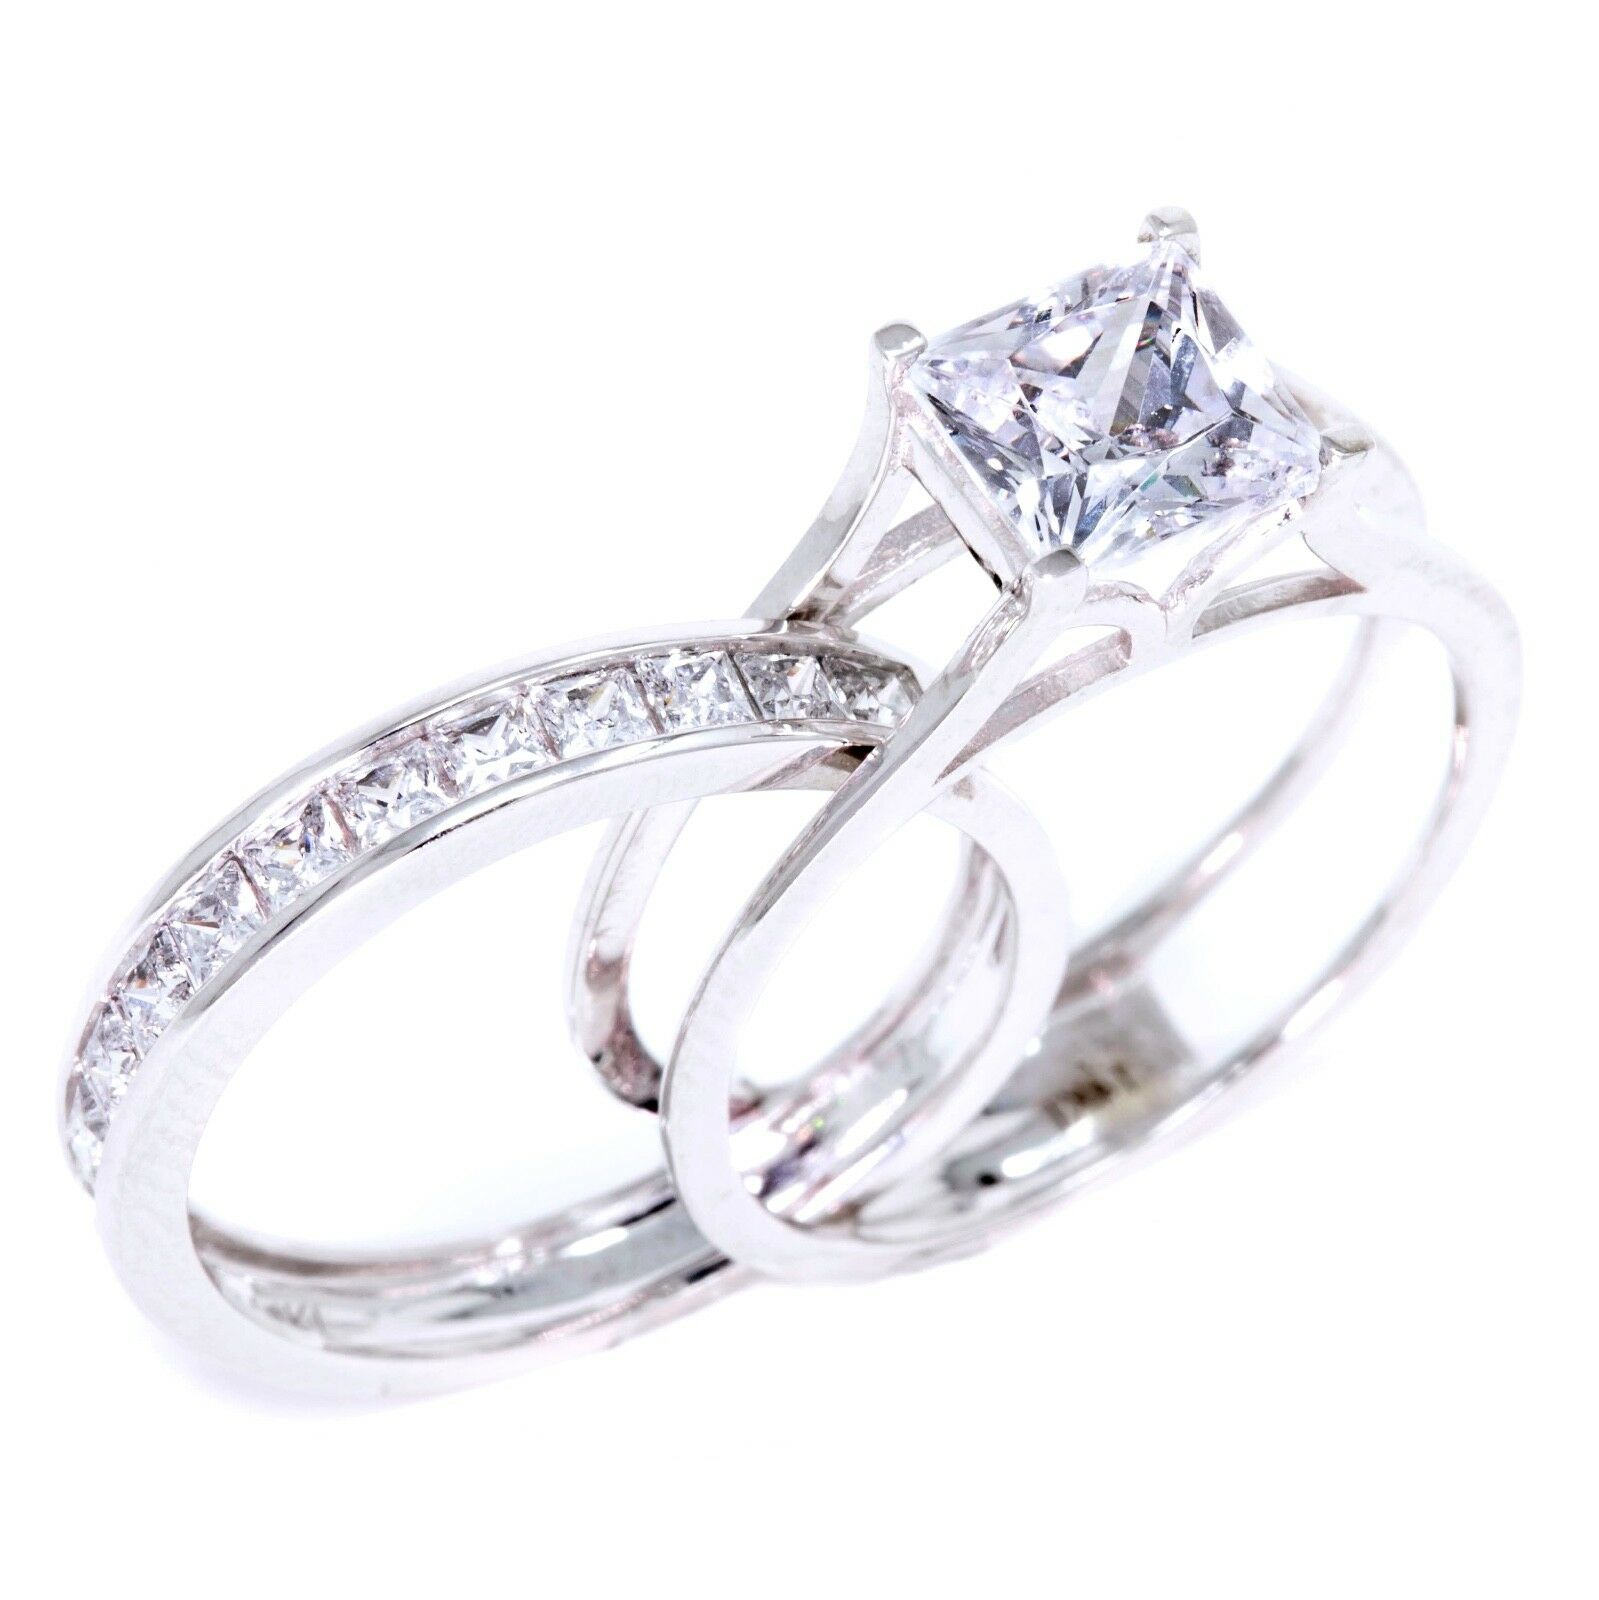 2 Ct Princess Cut 2-Piece Solid 14K White Gold Engagement Wedding Ring Band  Set 140101b58a1